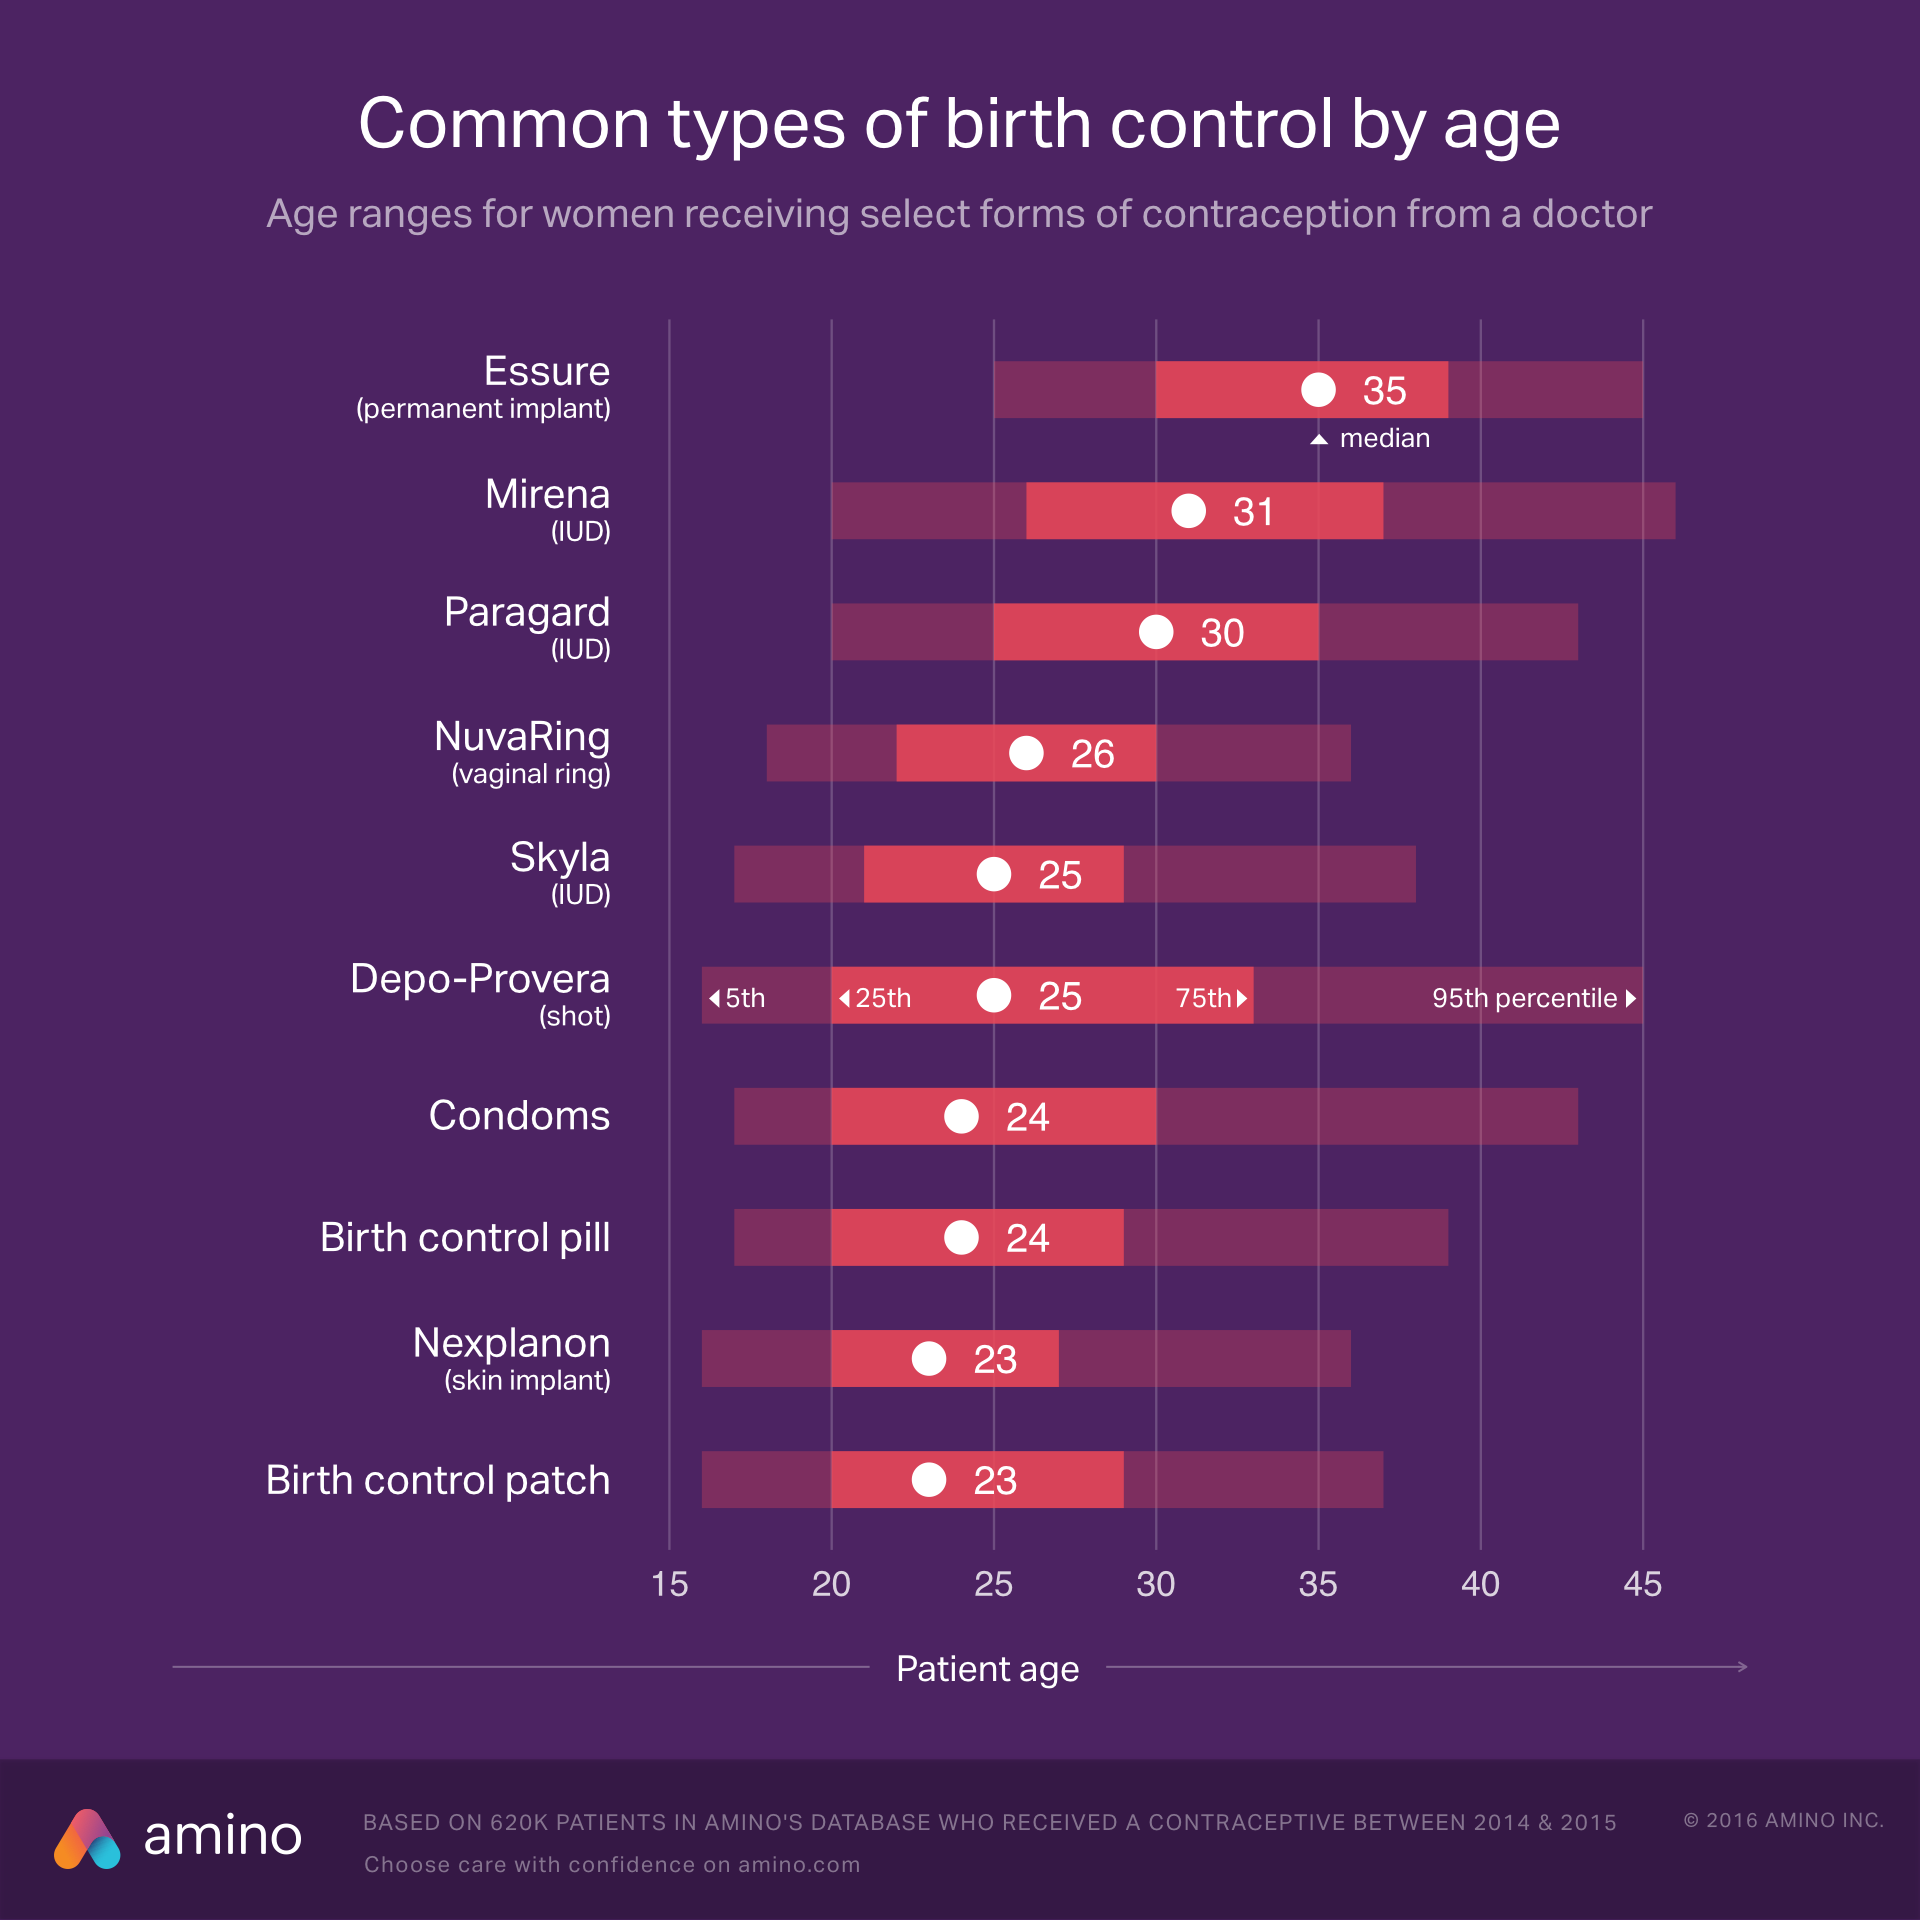 Common types of birth control by age